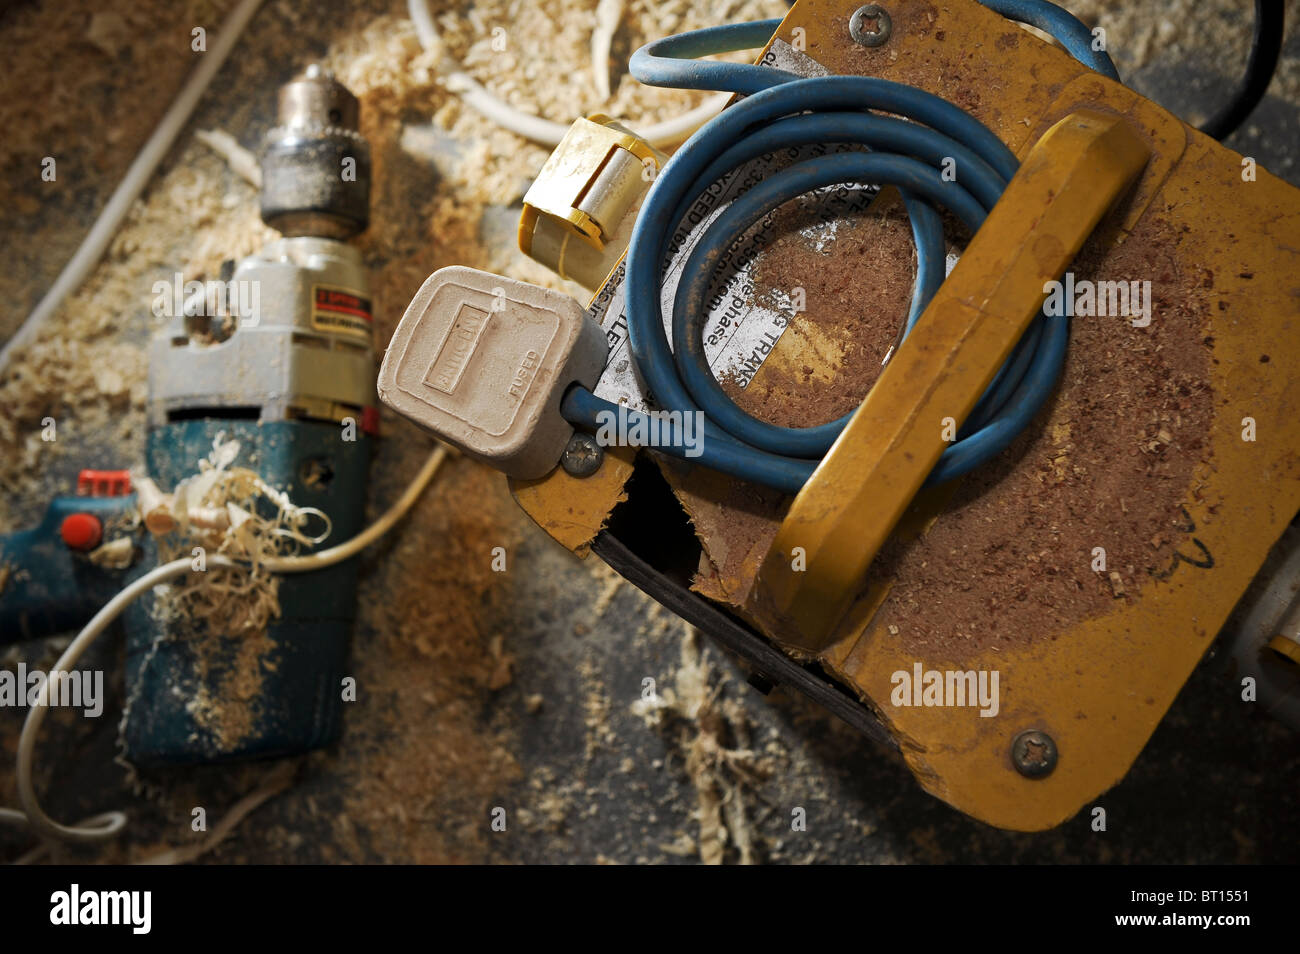 Electrical Fire Stock Photos Images Alamy Gas Fireplace Electricity Wiring Dangerous And Messy Workshop With Unsafe Power Tools Such As A Damaged Drill Transformer